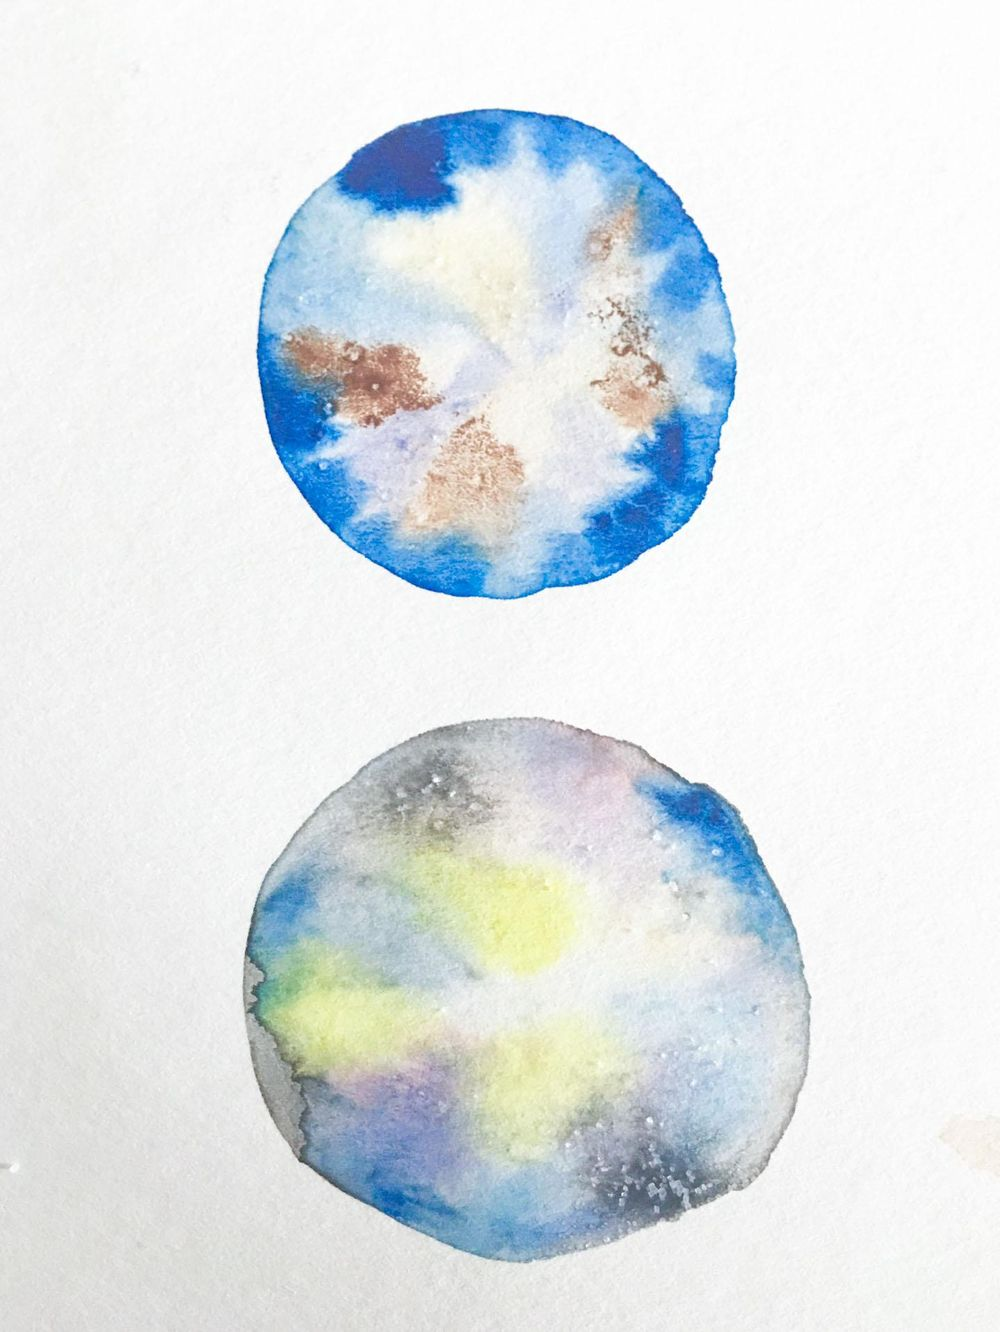 Watercolour Feathers Try 1! - image 2 - student project